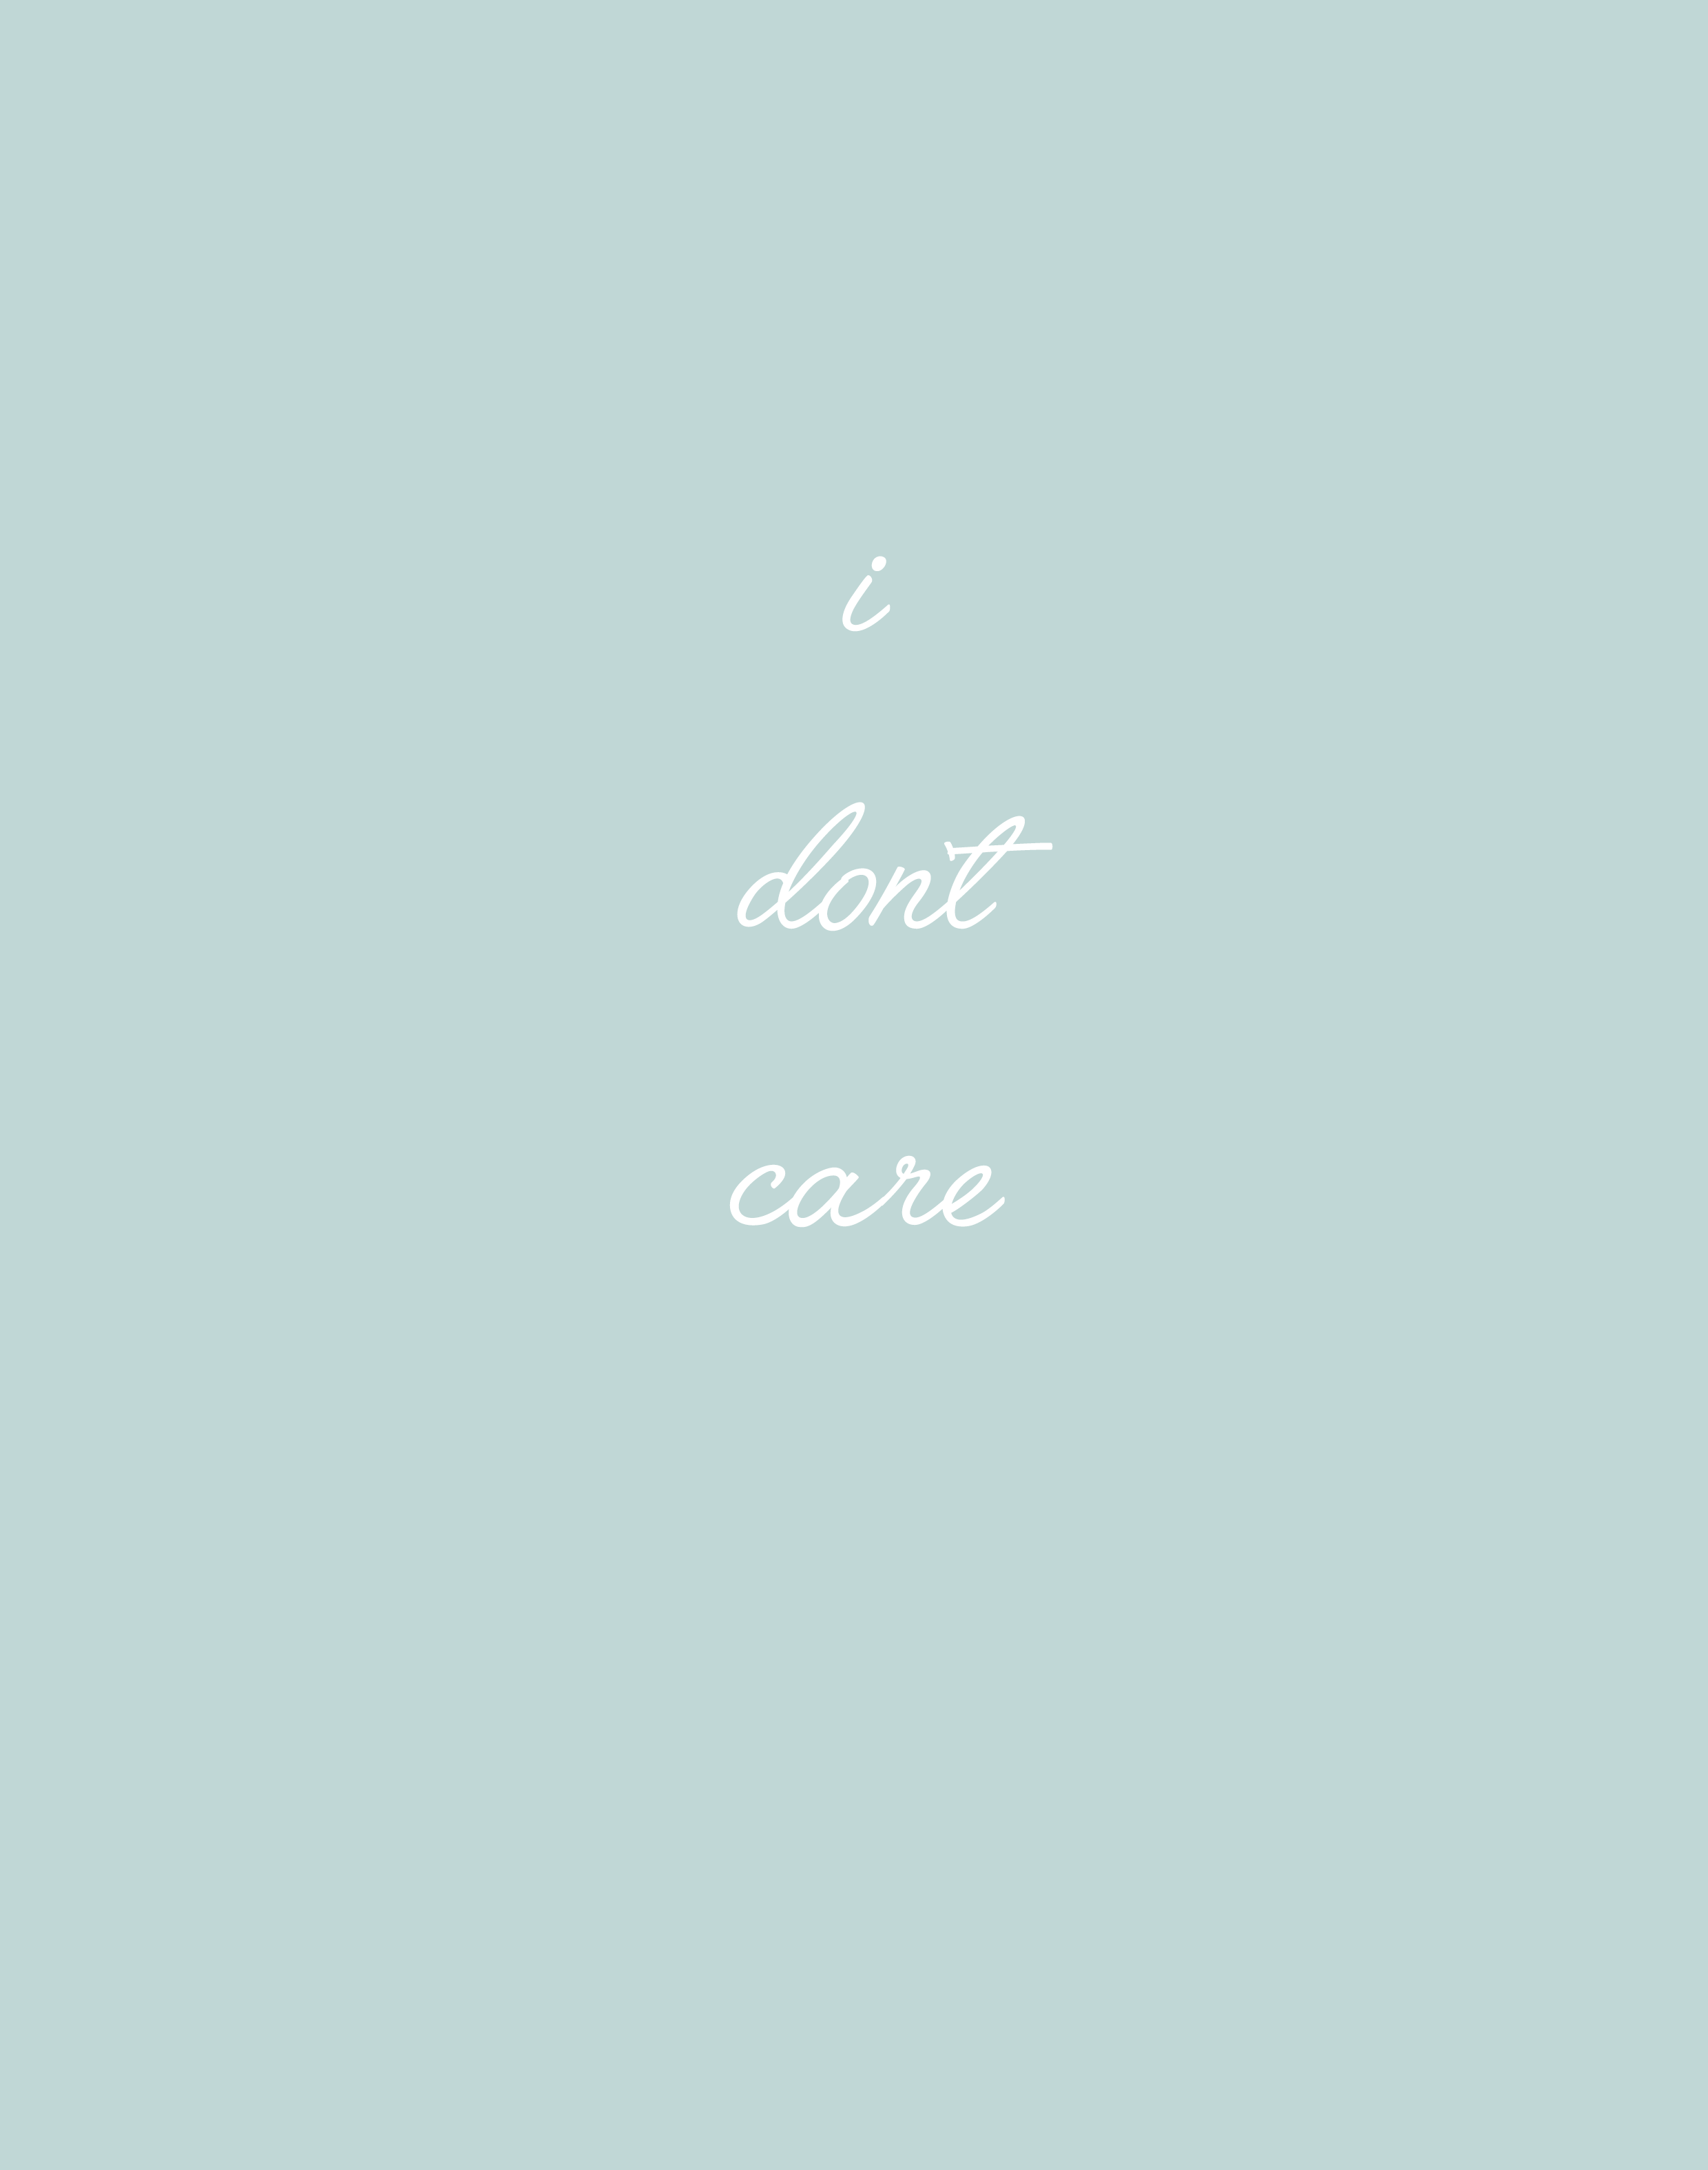 I DON'T CARE - This one is a strange one because in general there are a lot of things that I just don't care about. Which is a good thing as I don't spend my energy getting upset over things that don't concern me and telling myself I don't care generally helps me worry a little less. But sometimes I use the whole I don't care thing as a defense mechanism when I actually do really care about something but I don't want to admit that I might be hurt by it. And caring about things weirdly has this bad reputation that it makes us too sensitive but caring is cool and caring is nice.